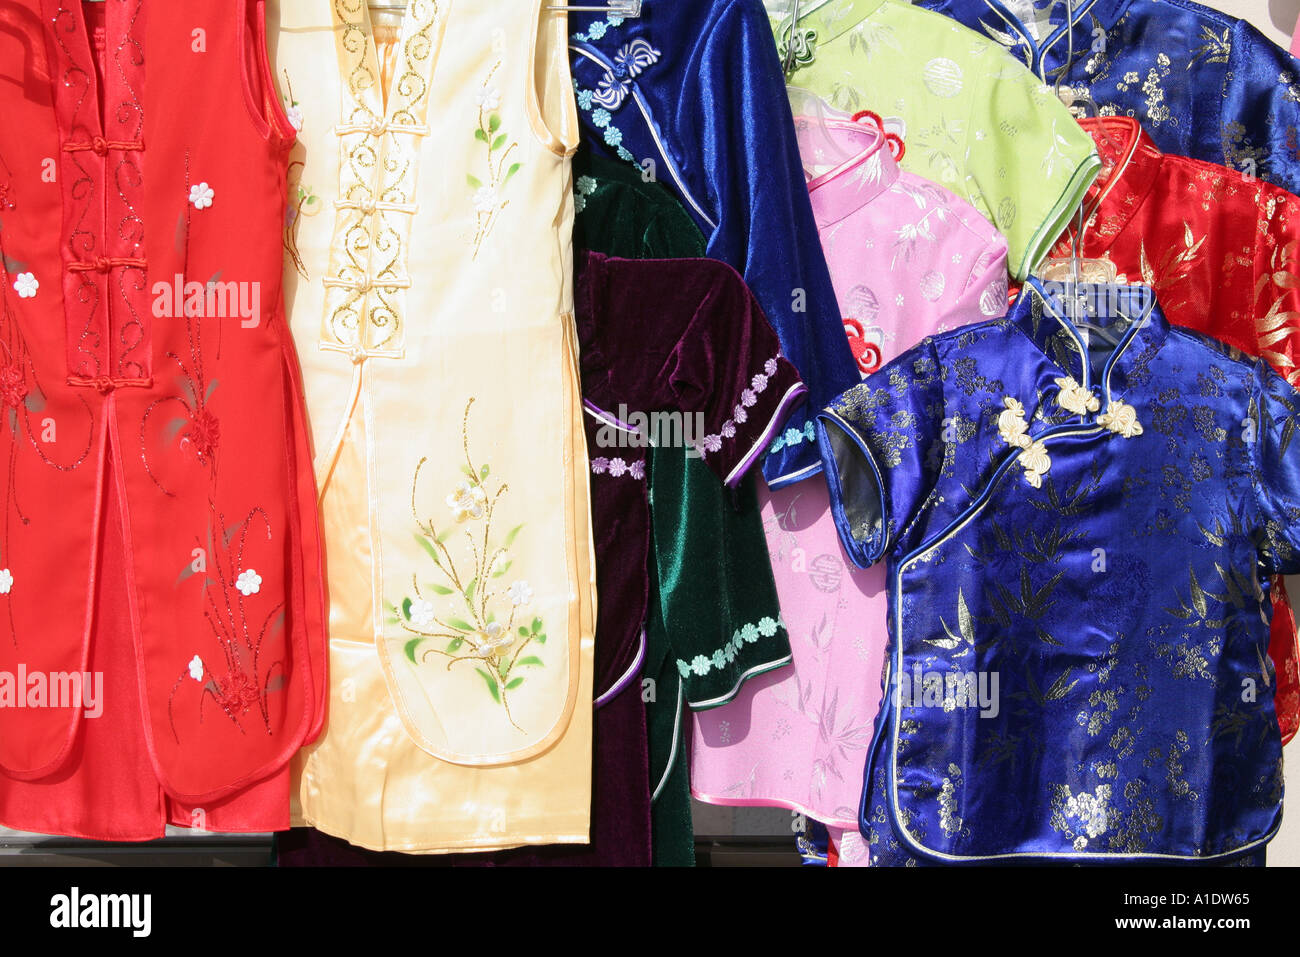 Stock Photo - California Westminster Little Saigon traditional clothing for sale